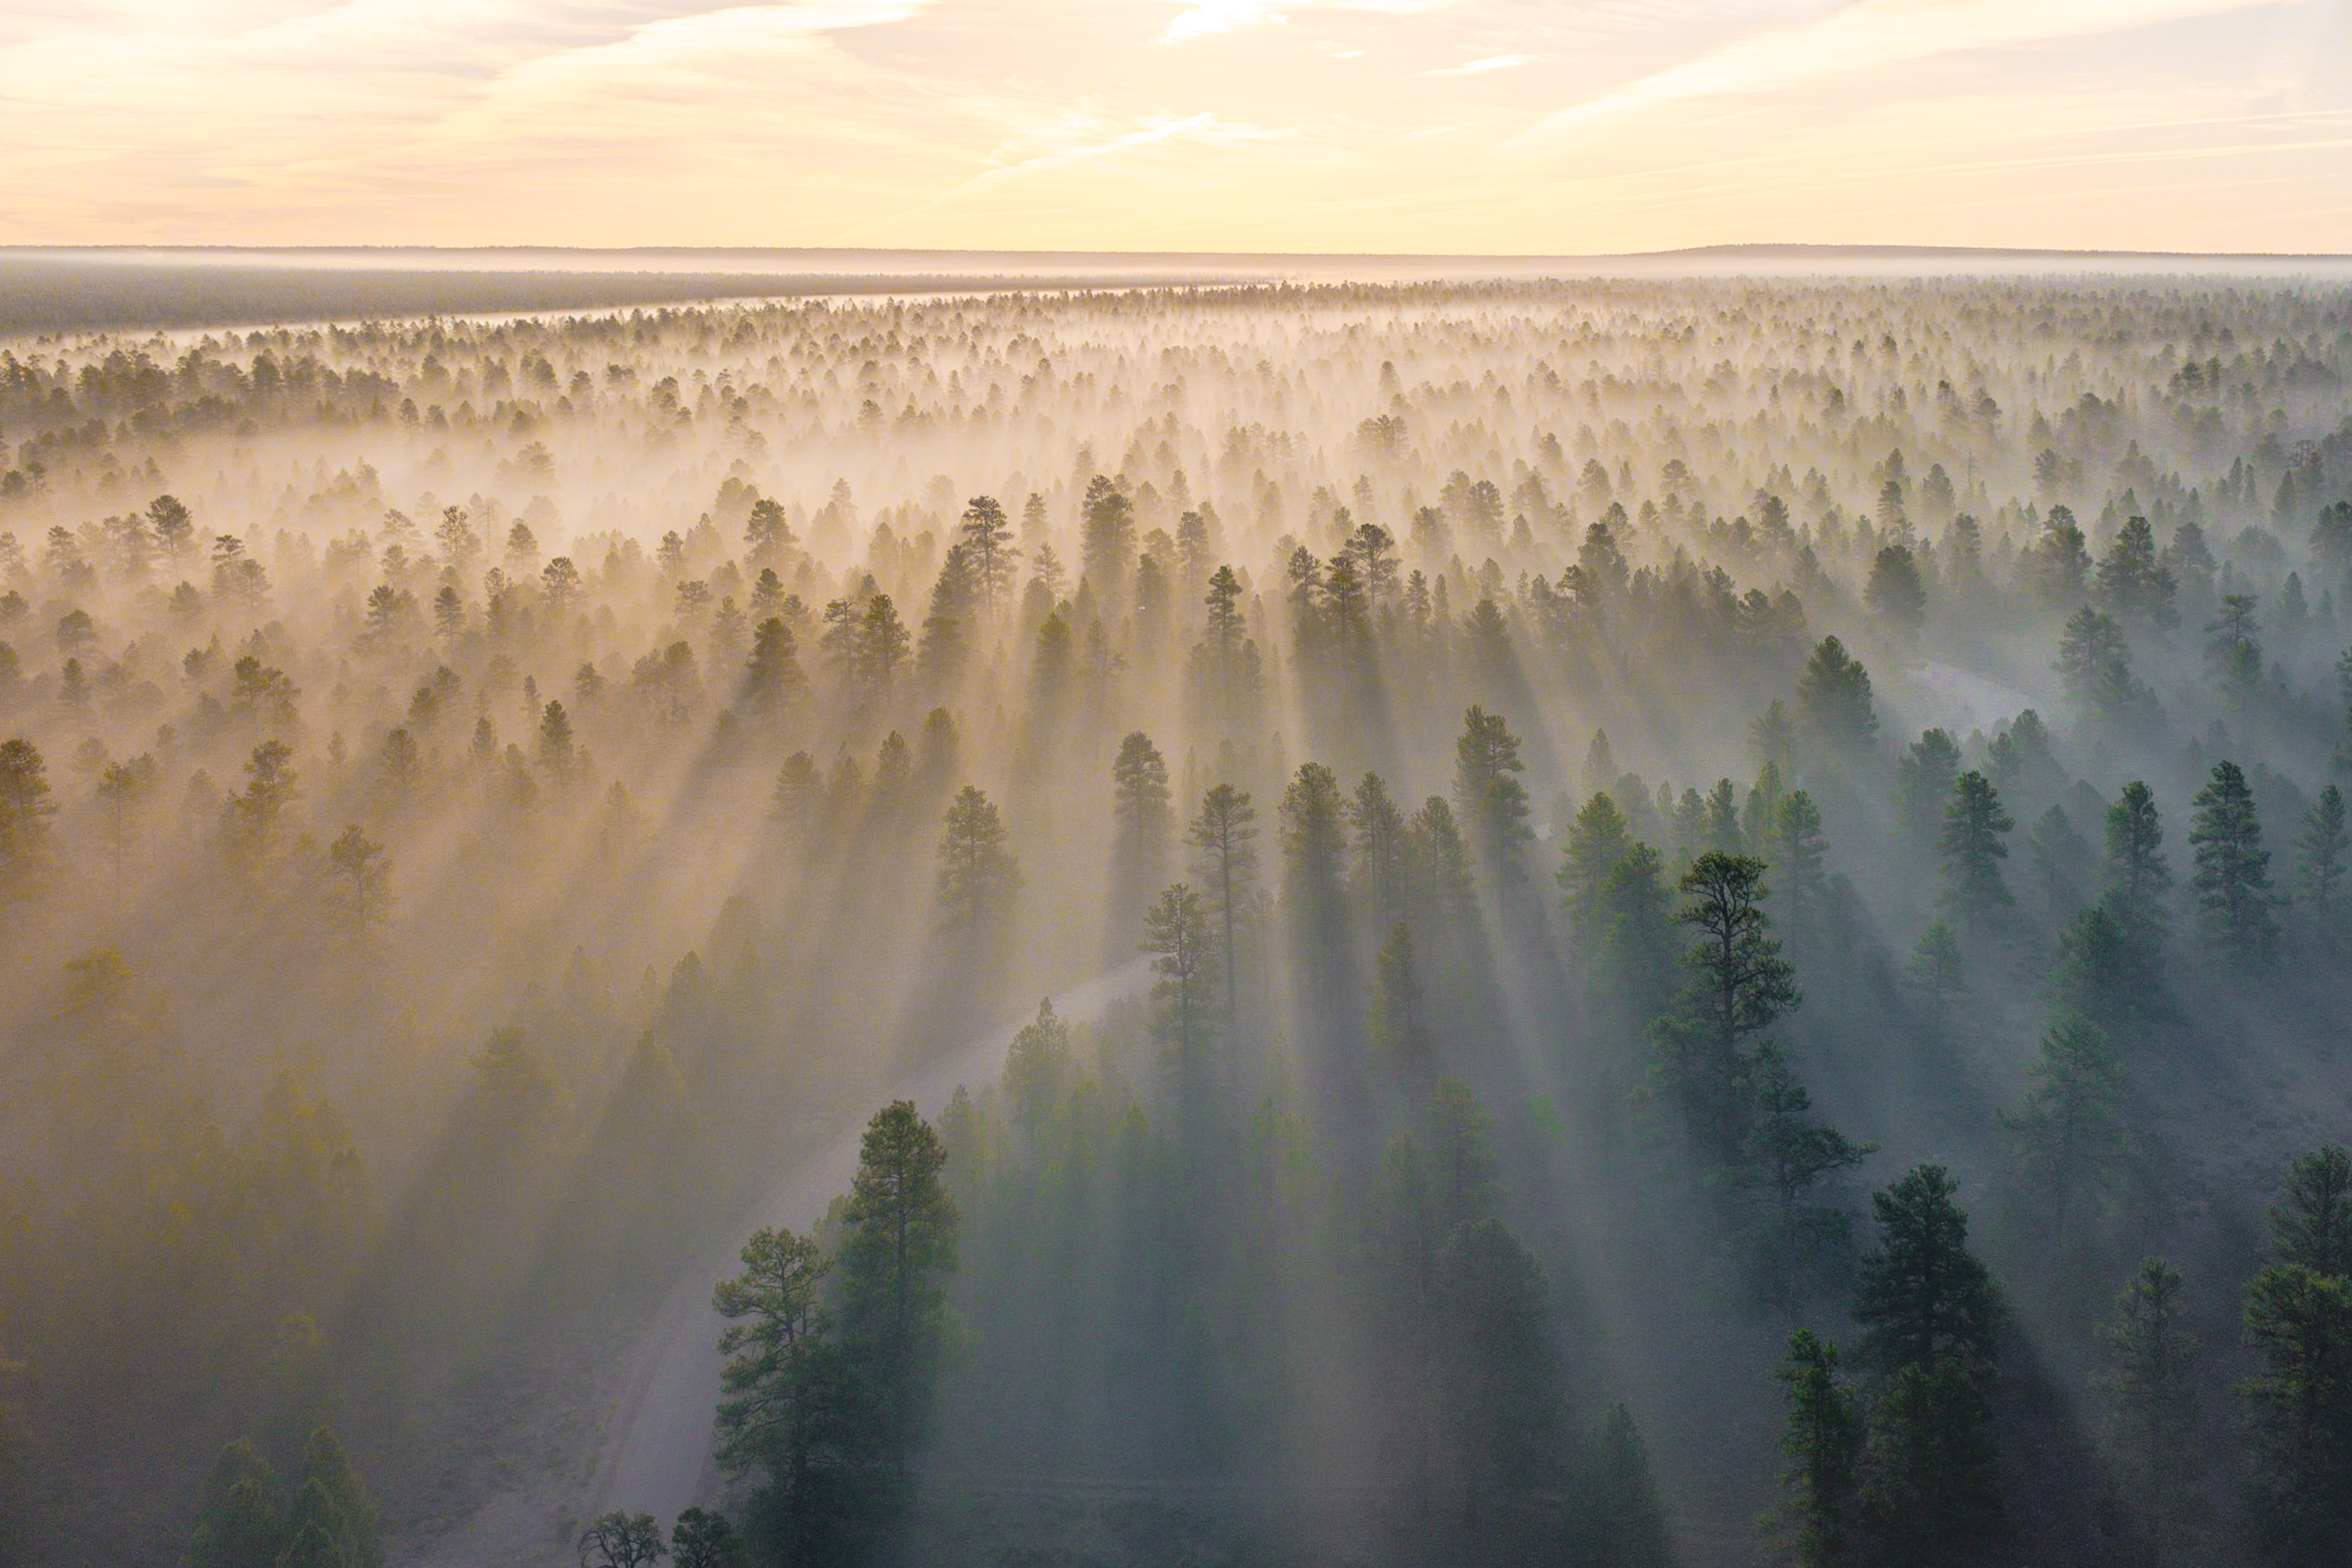 mountain with trees covered with fogs at daytime